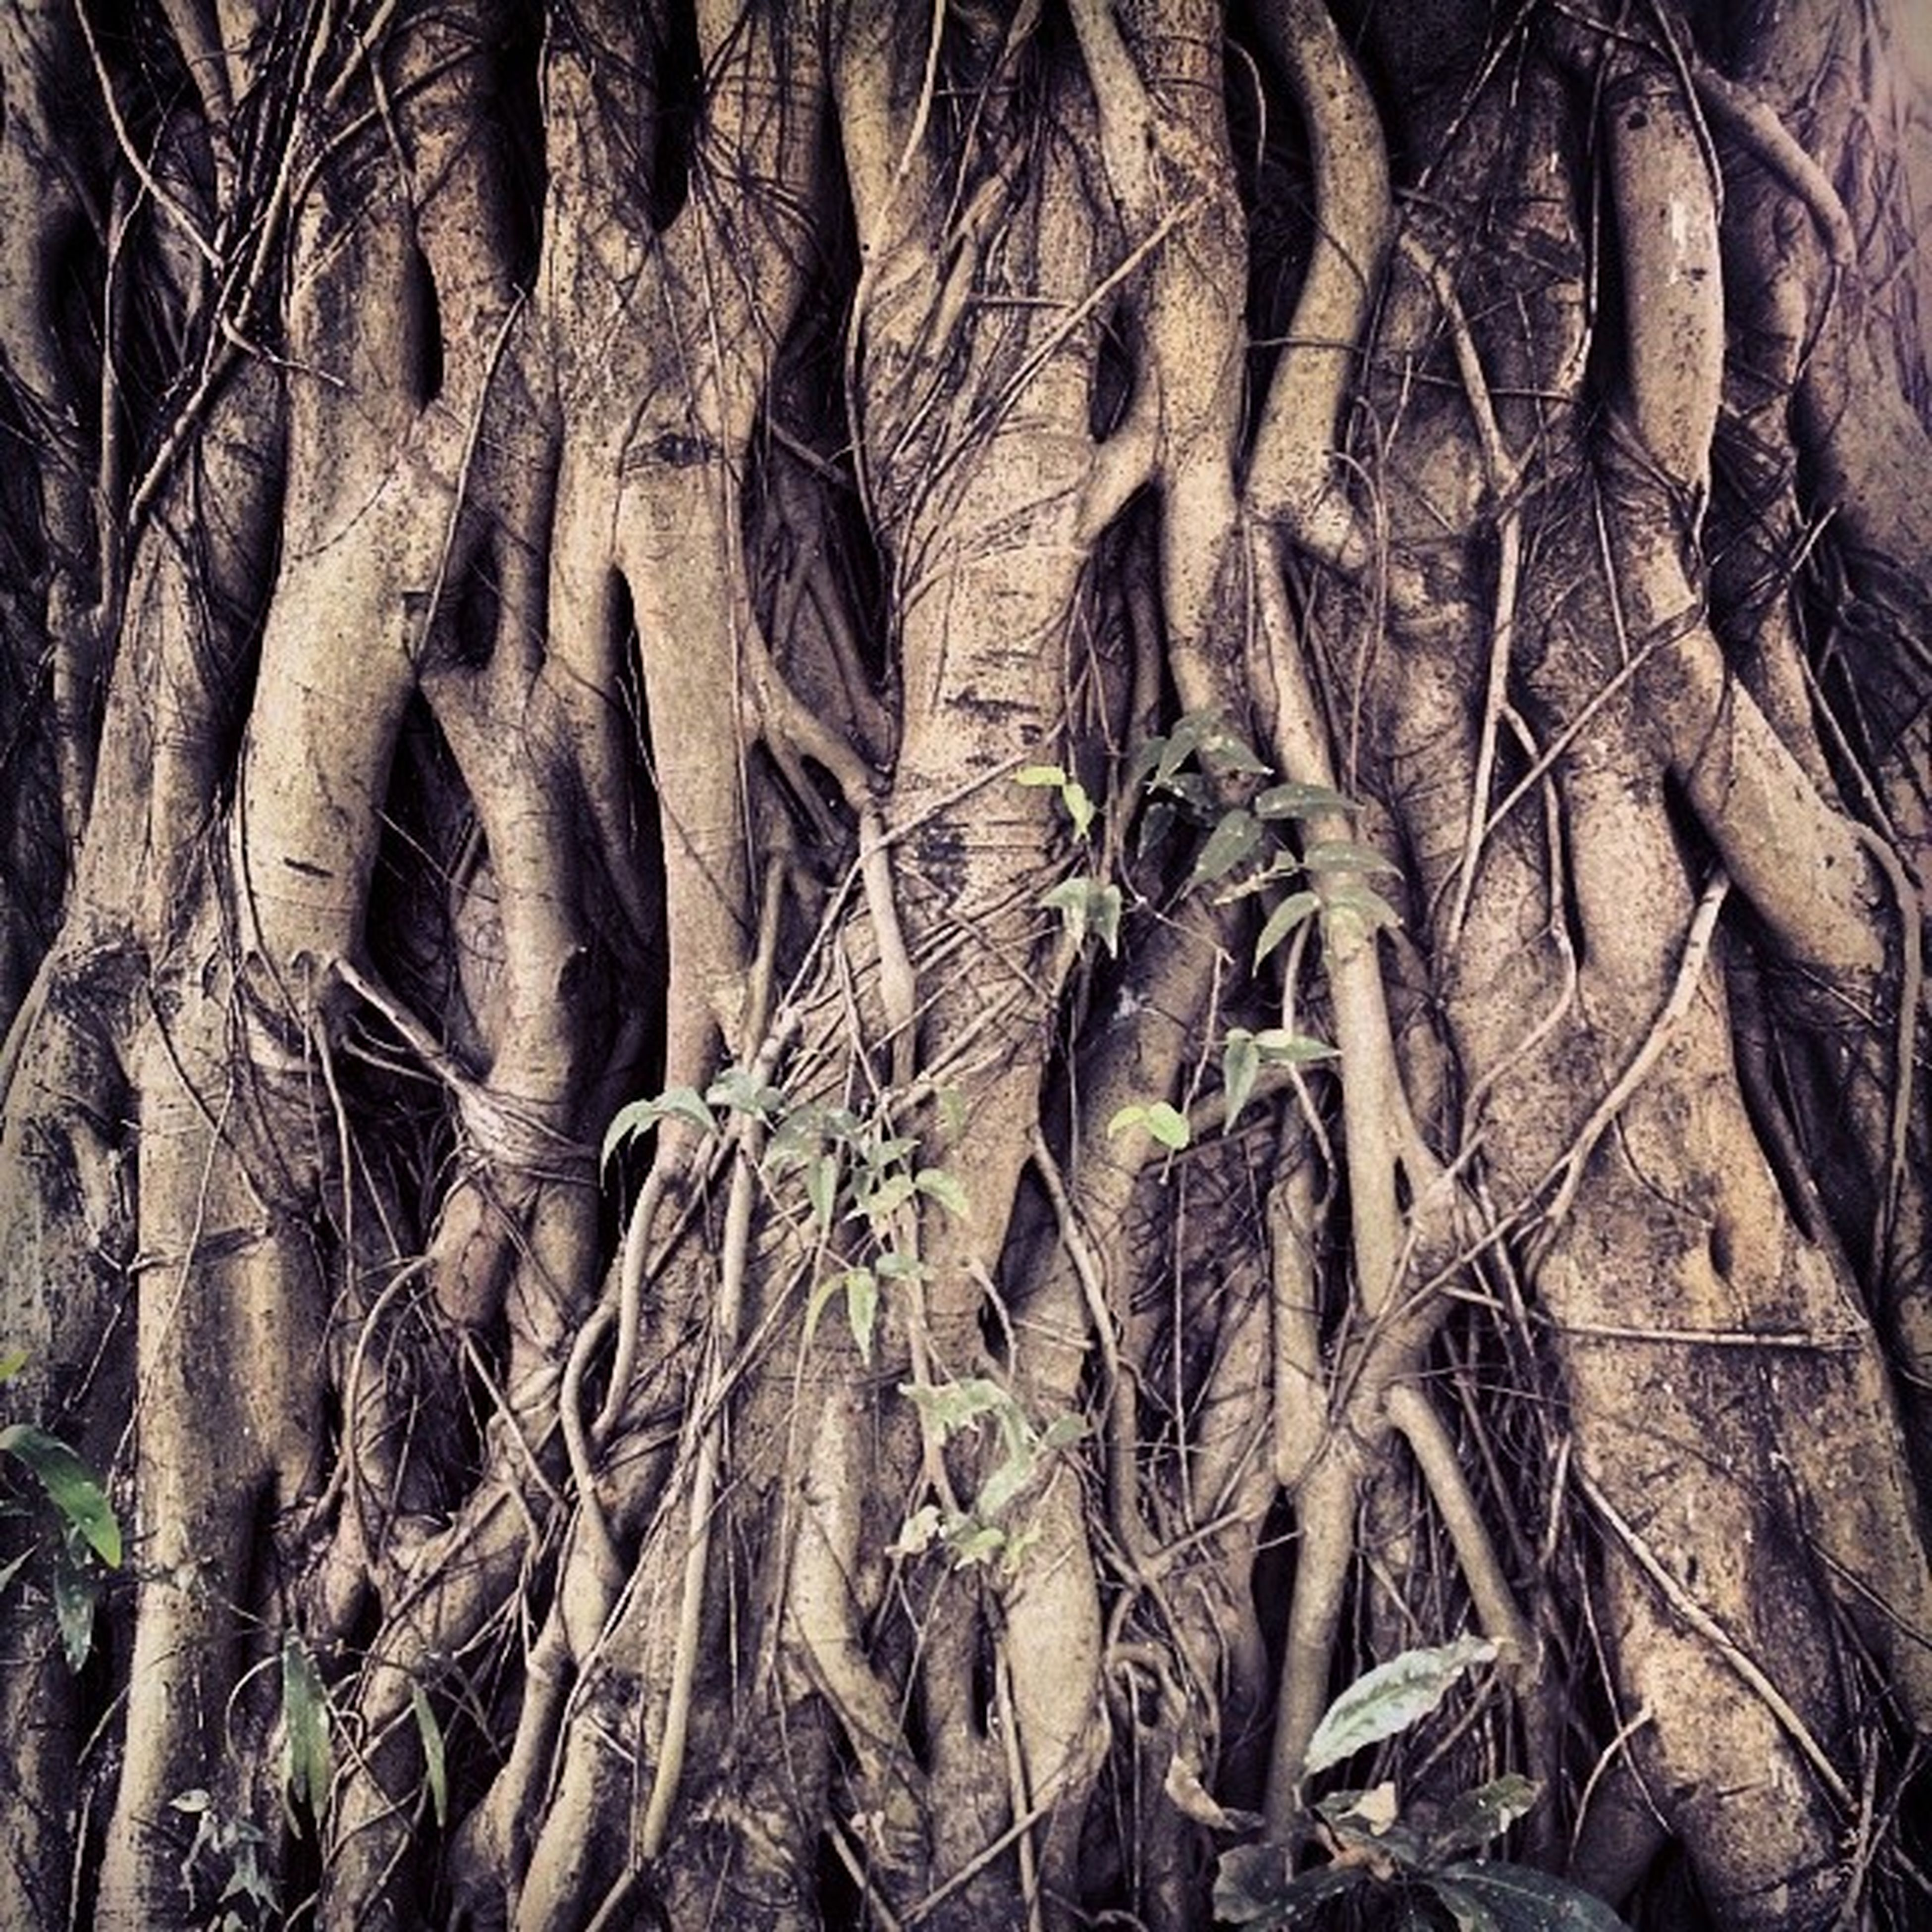 tree, full frame, tree trunk, backgrounds, branch, low angle view, nature, root, growth, forest, bare tree, close-up, no people, textured, outdoors, dead plant, tranquility, bark, day, natural pattern